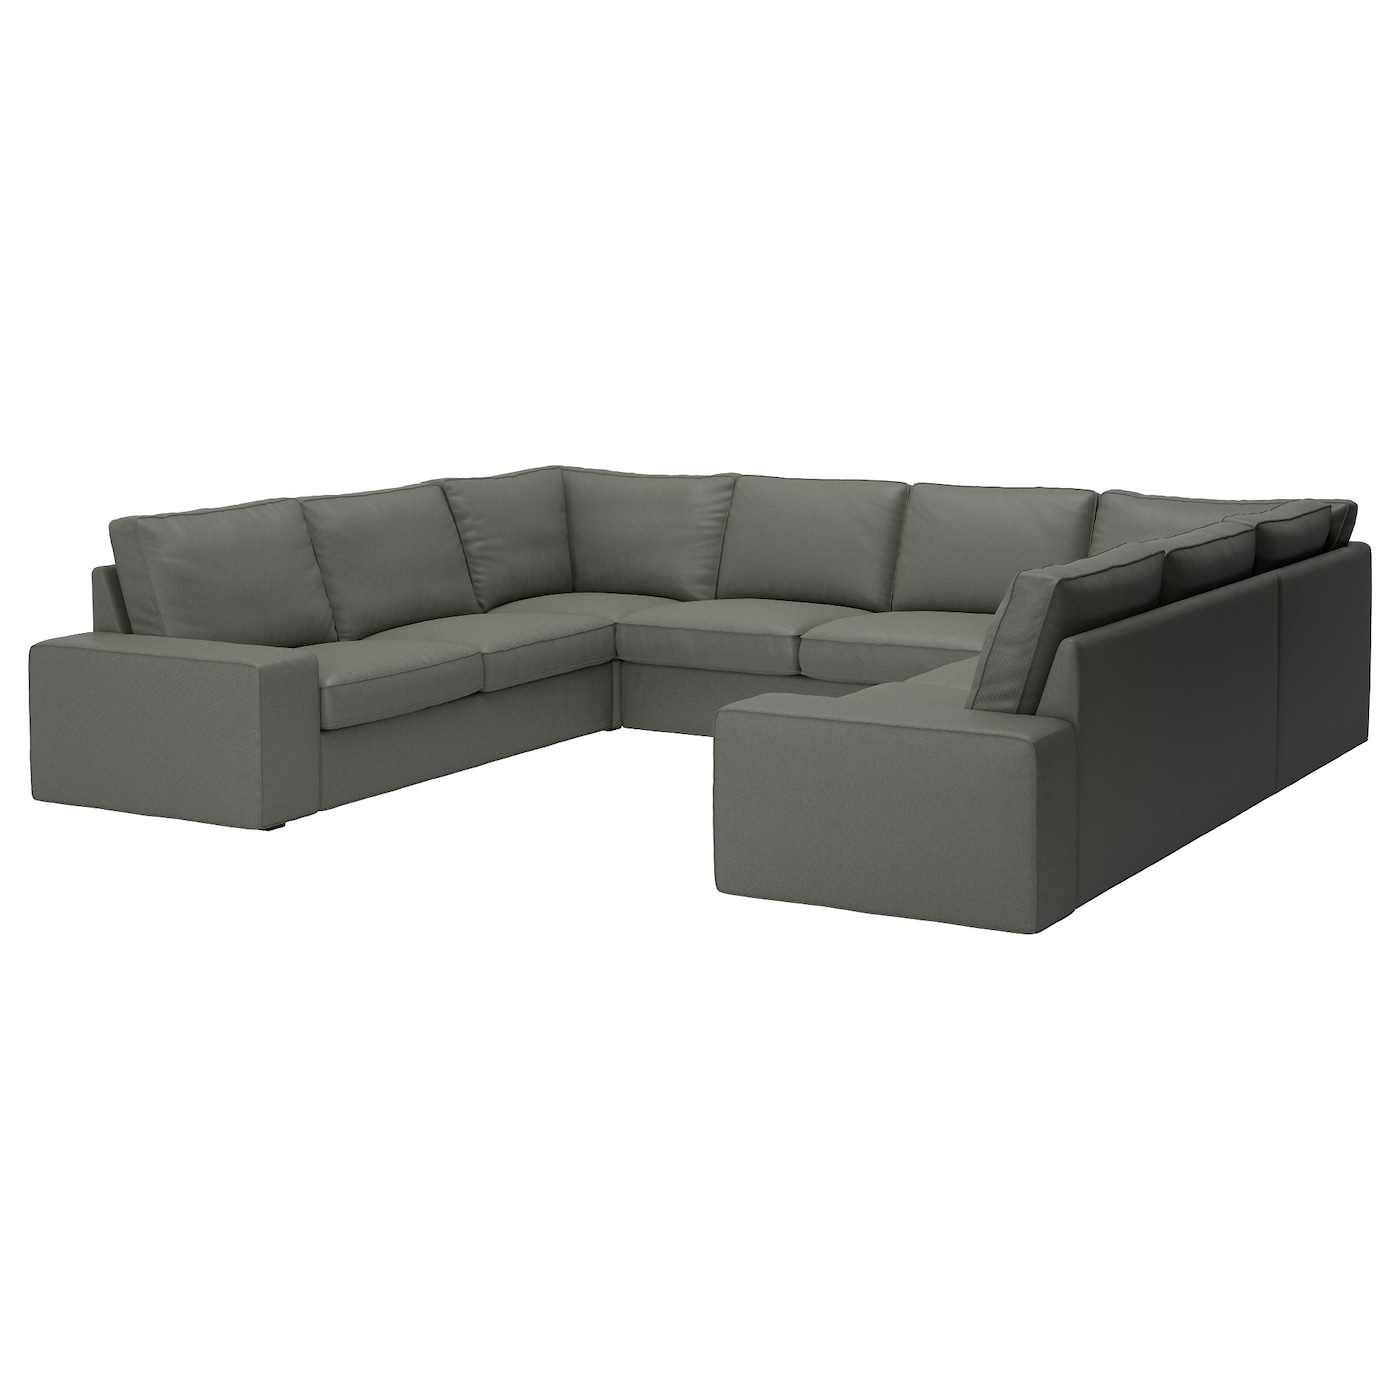 Kivik sofa u shaped 8 seater borred grey green ikea - Dessus de canape ikea ...